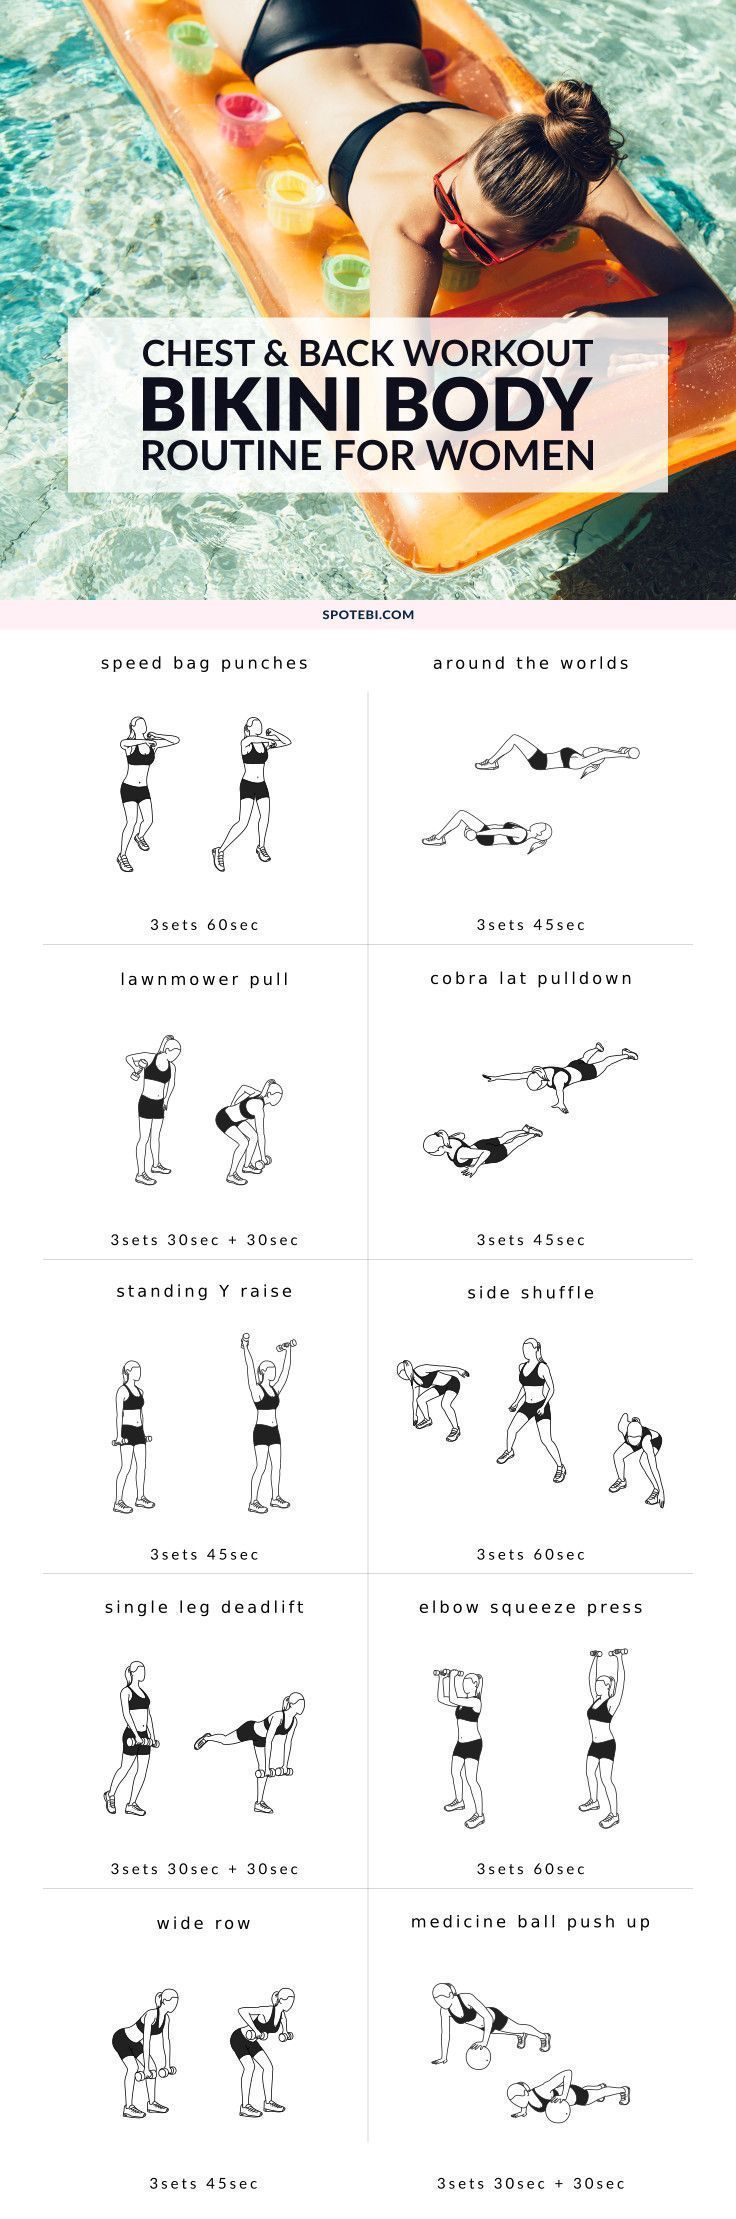 Try this chest and back workout and get your body ready for tank top season! This set of 10 upper body exercises is perfect for toning and shaping the muscles and giving your bust line a lift! http://www.spotebi.com/workout-routines/chest-and-back-workout